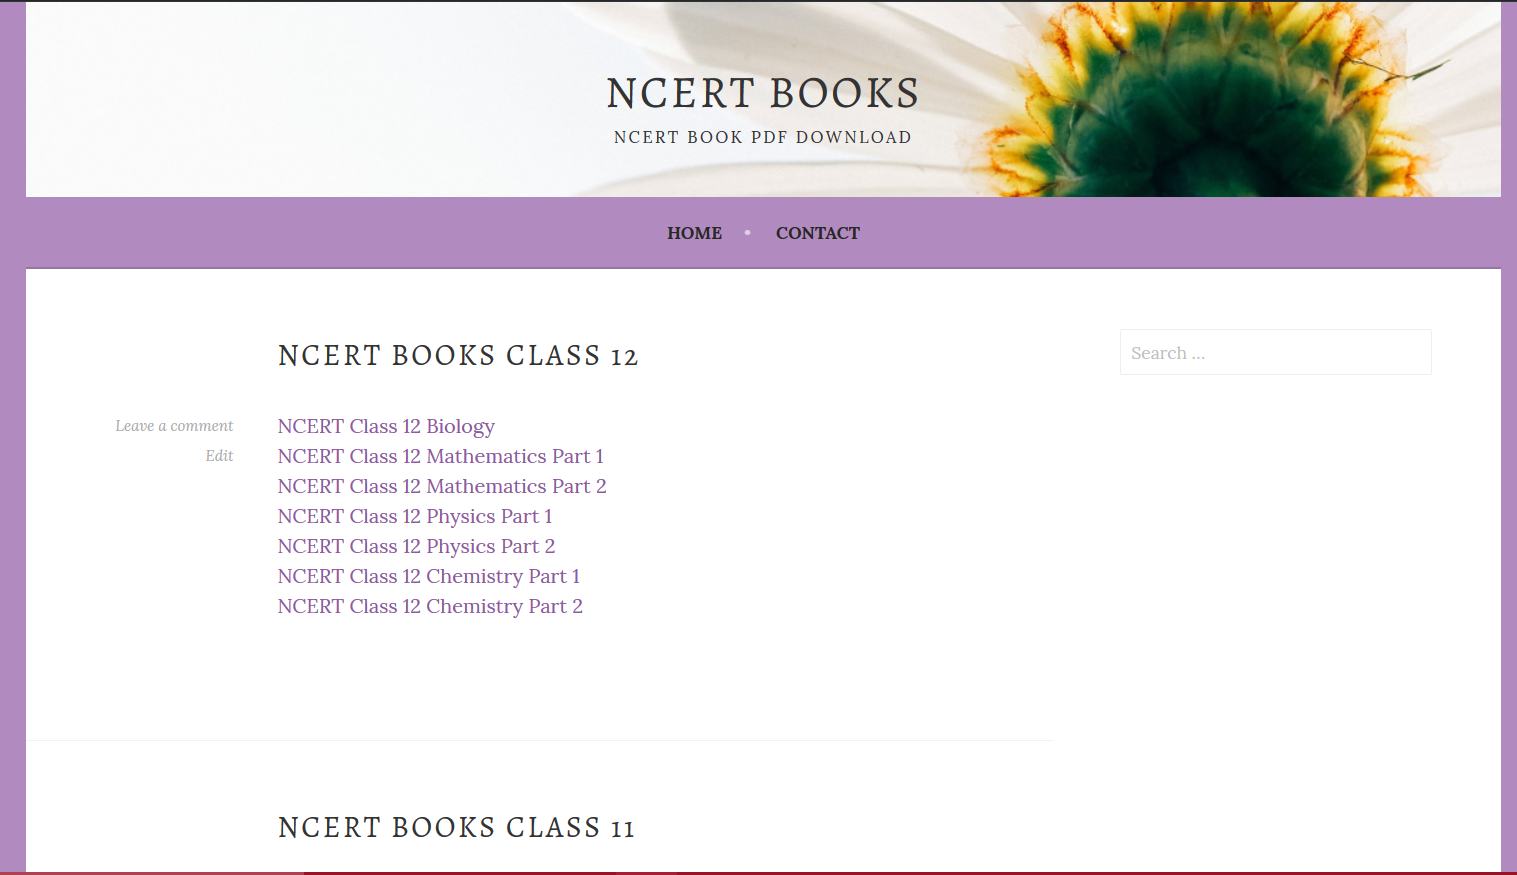 Ncert Books For Class 12 Chemistry Part 1 Pdf